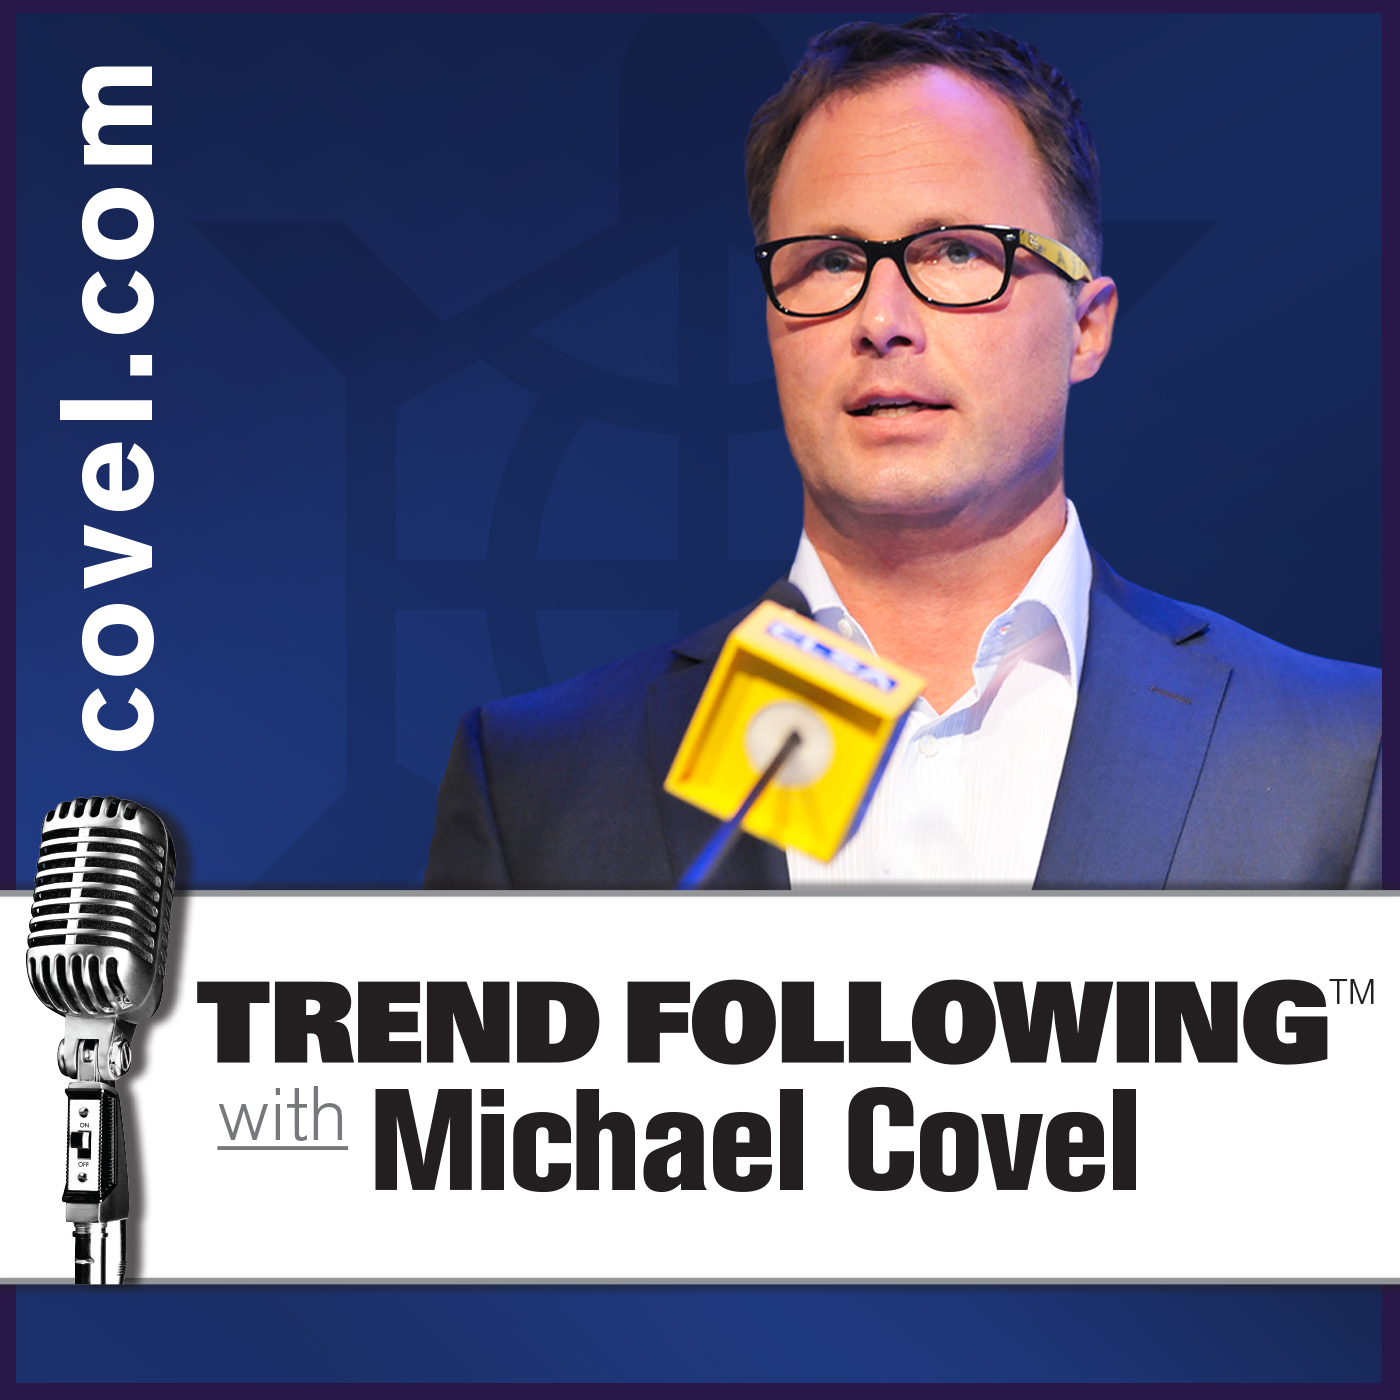 Ep. 481: Chris Zook Interview with Michael Covel on Trend Following Radio